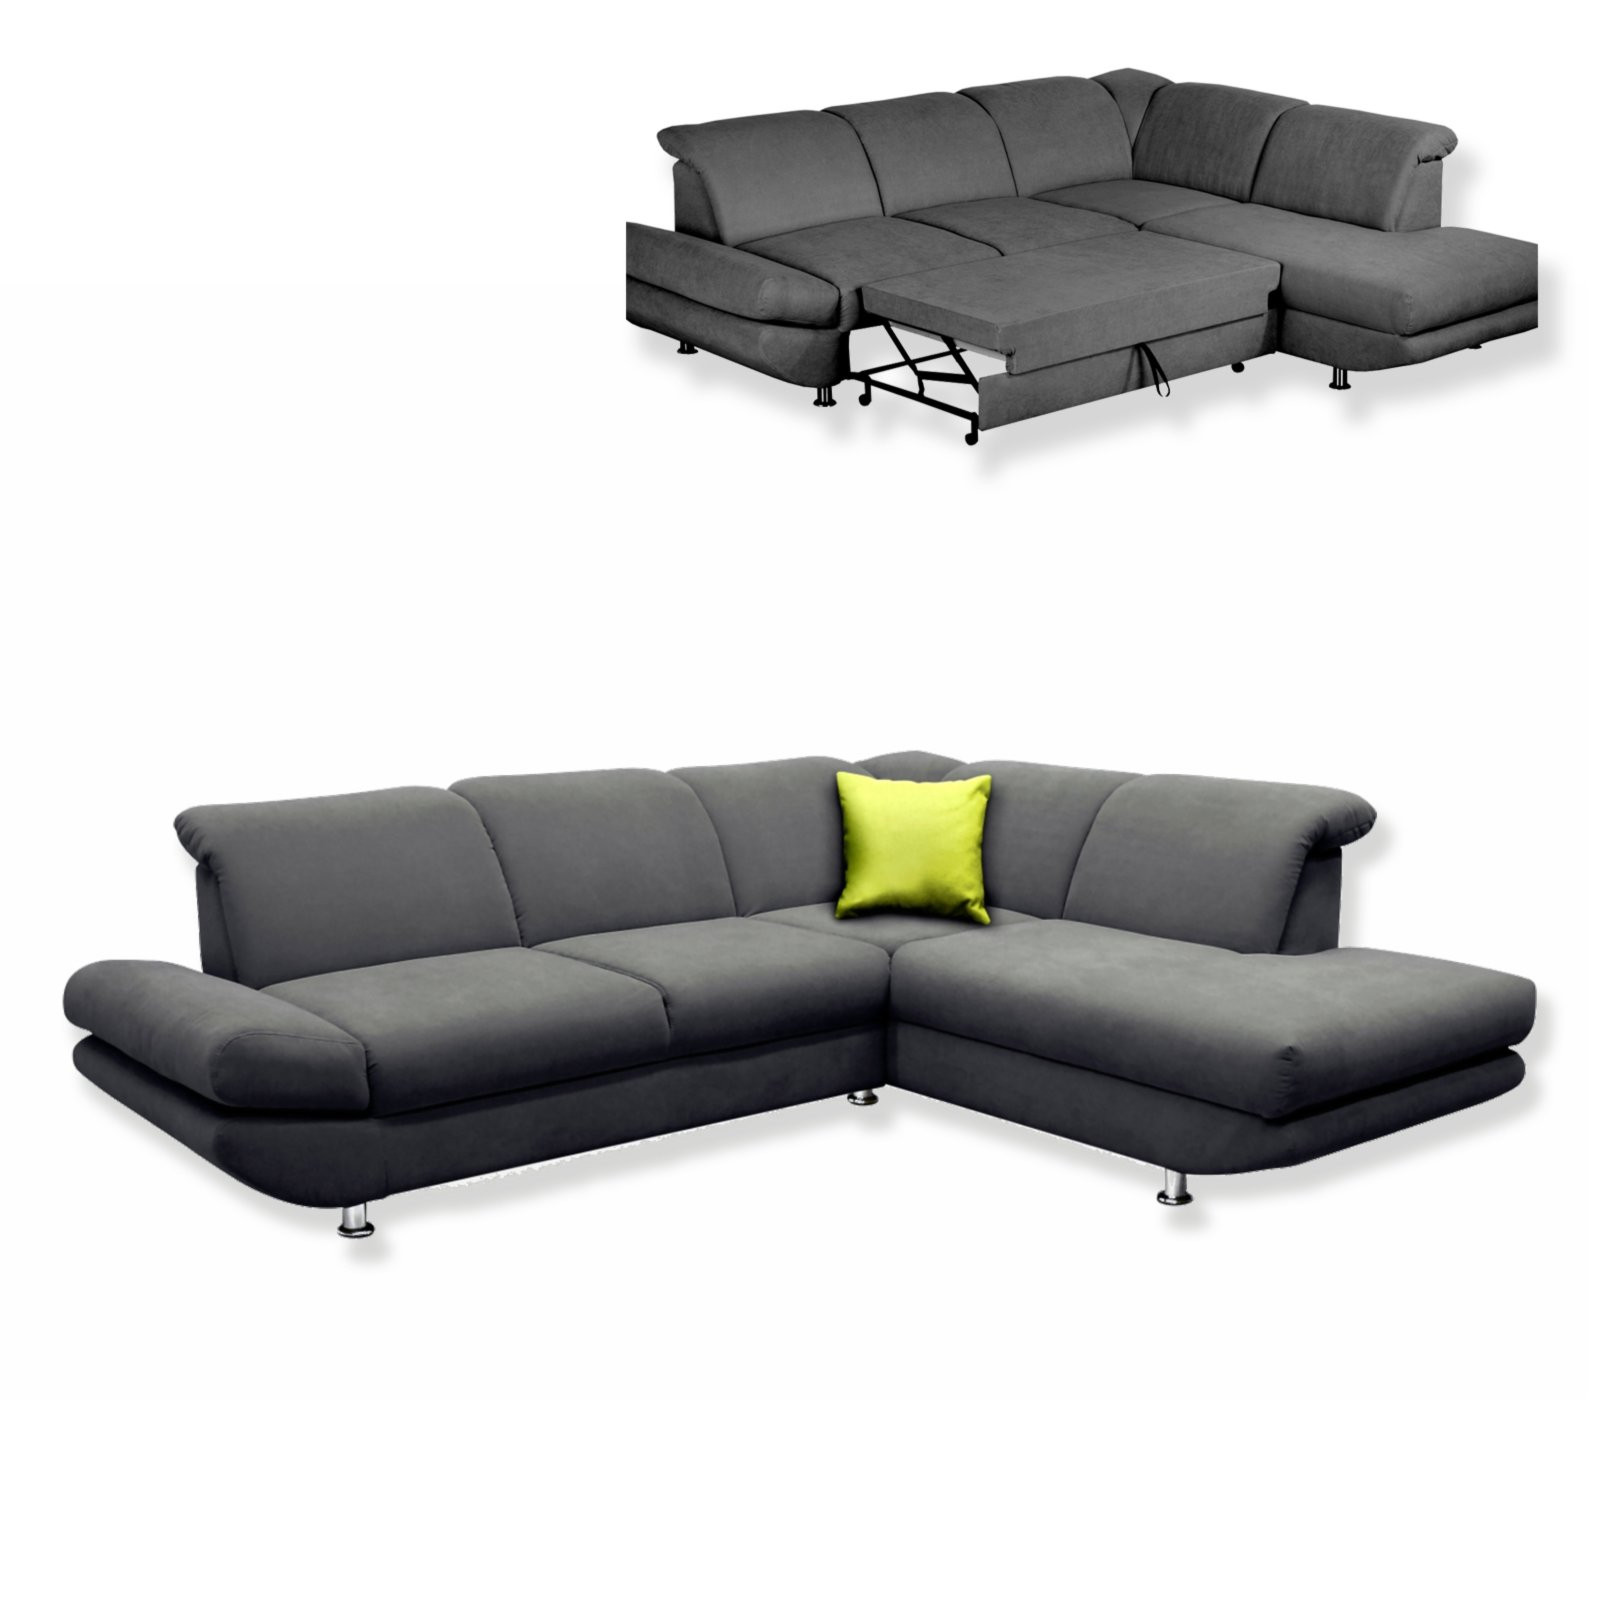 polsterecke grau liegefunktion ottomane rechts ecksofas l form sofas couches m bel. Black Bedroom Furniture Sets. Home Design Ideas